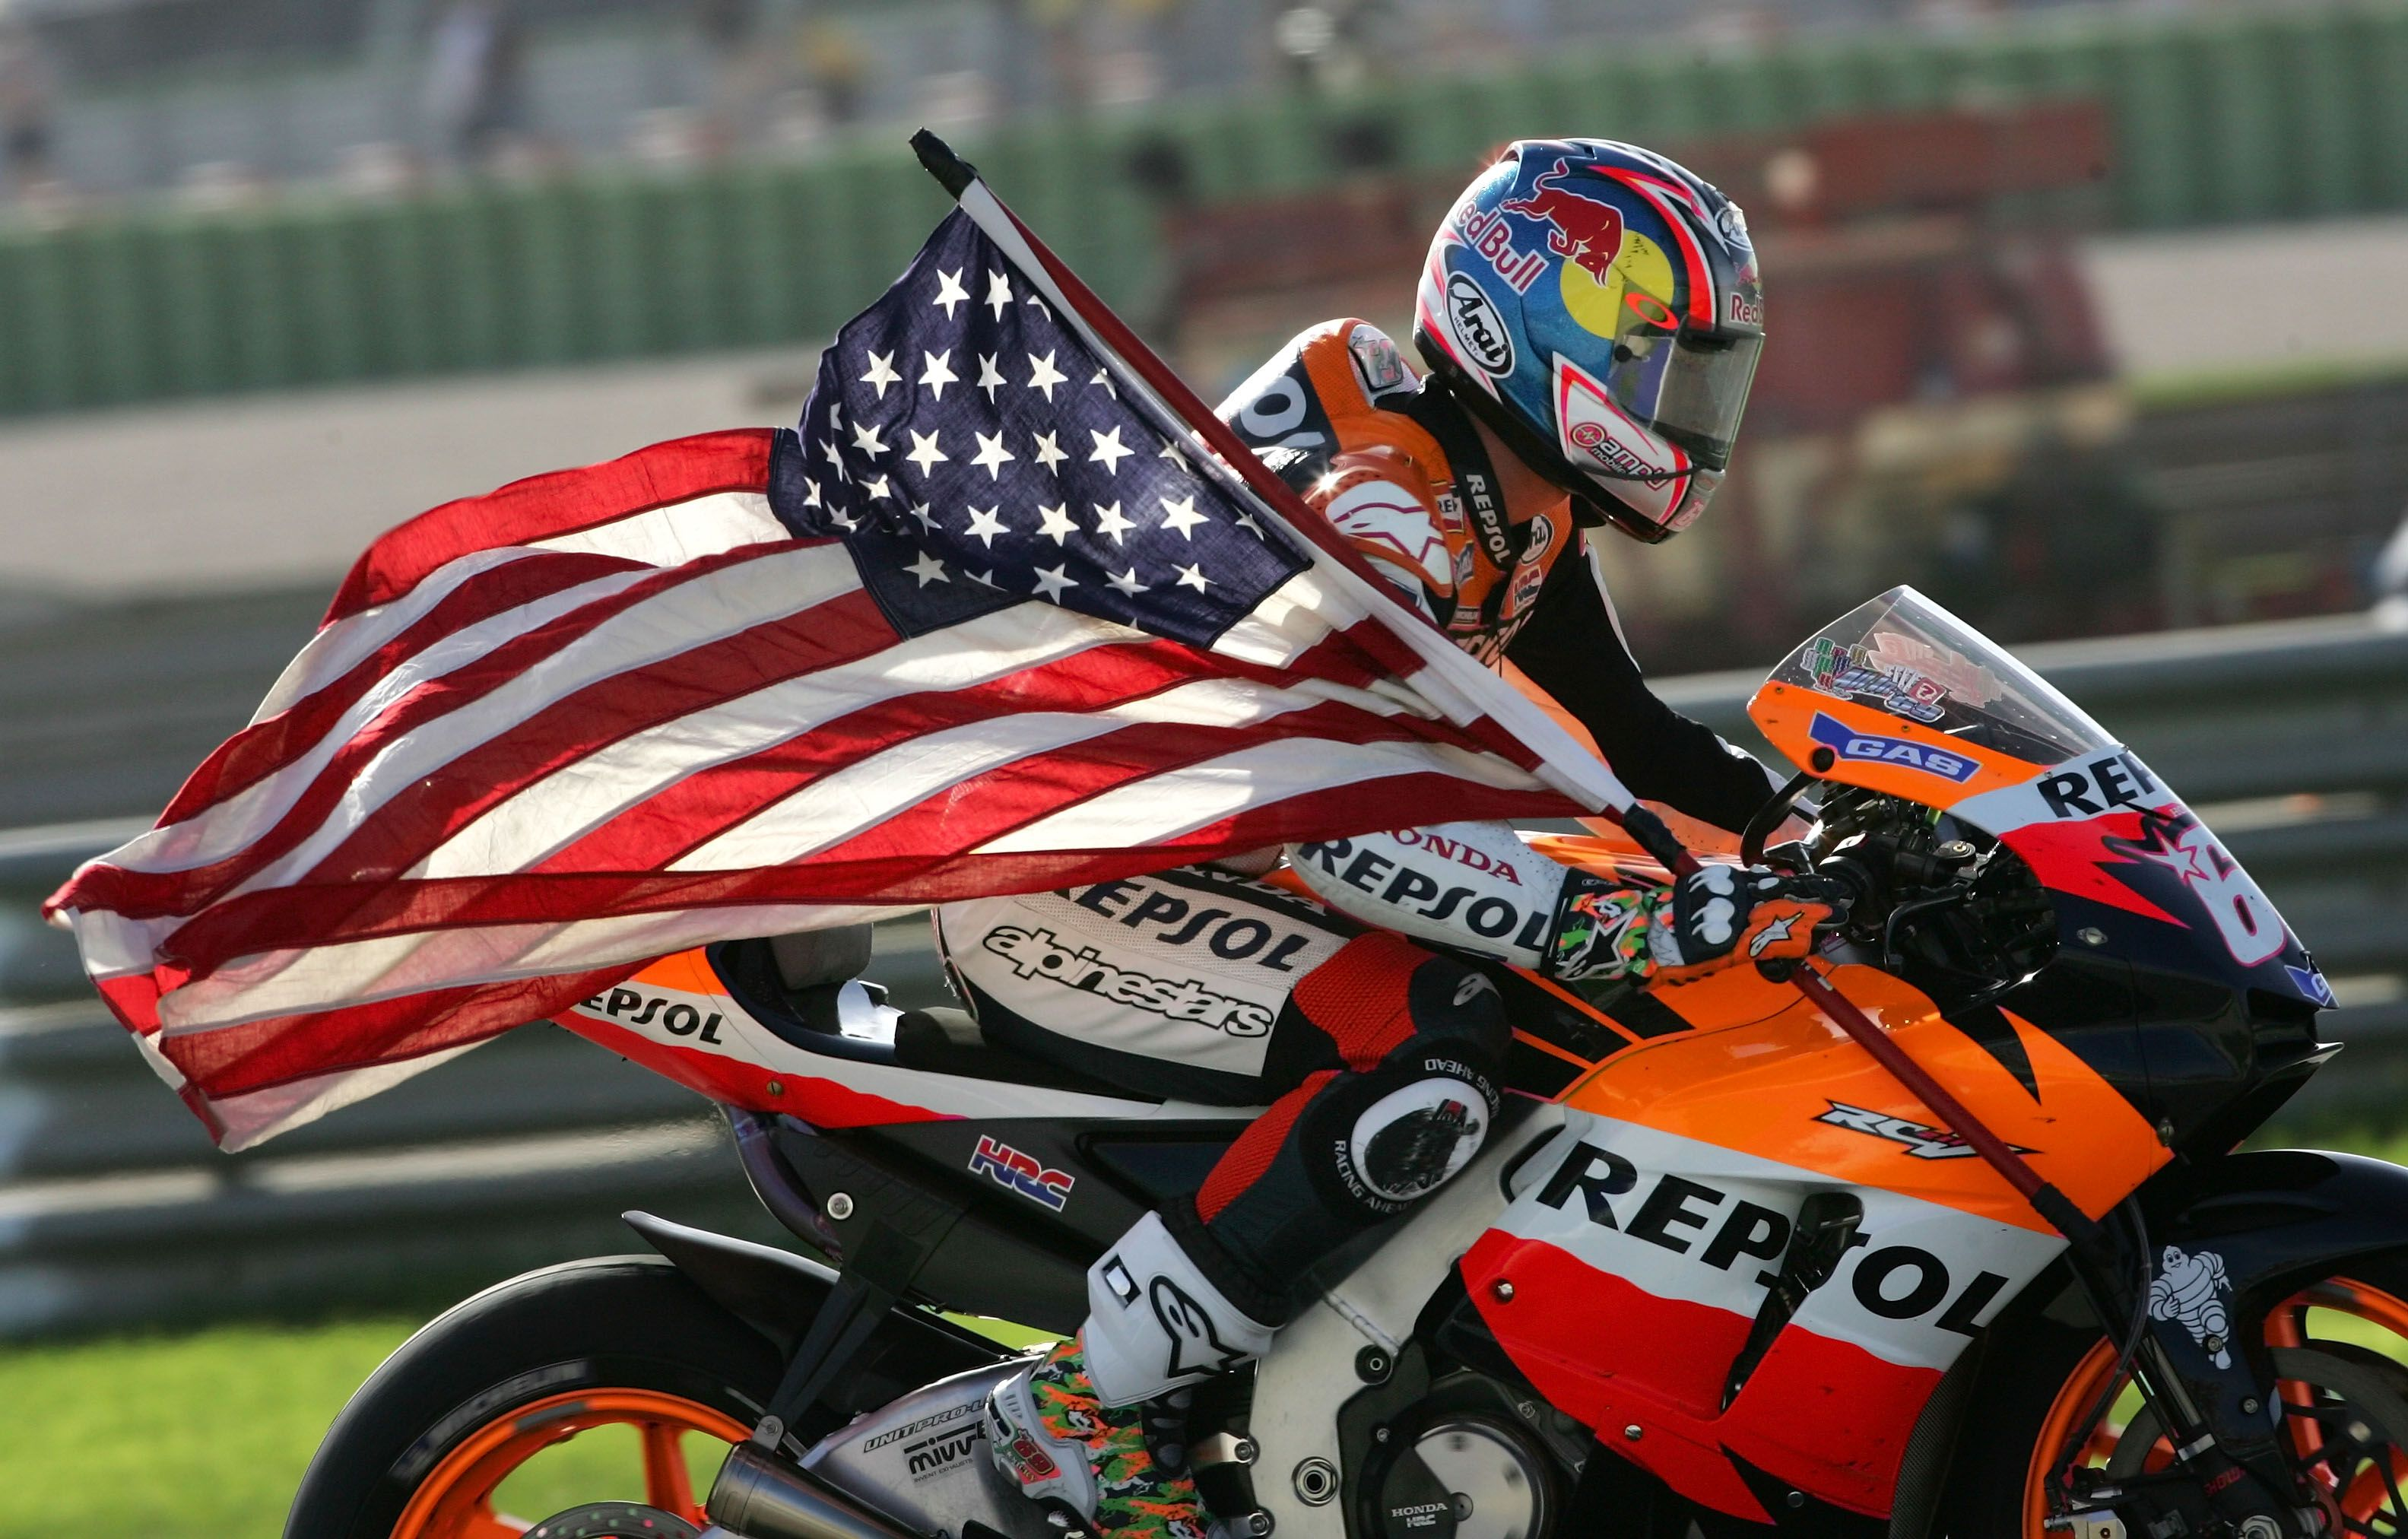 Driver Who Killed Motogp Champion Nicky Hayden Gets Suspended One Year Sentence Autoevolution